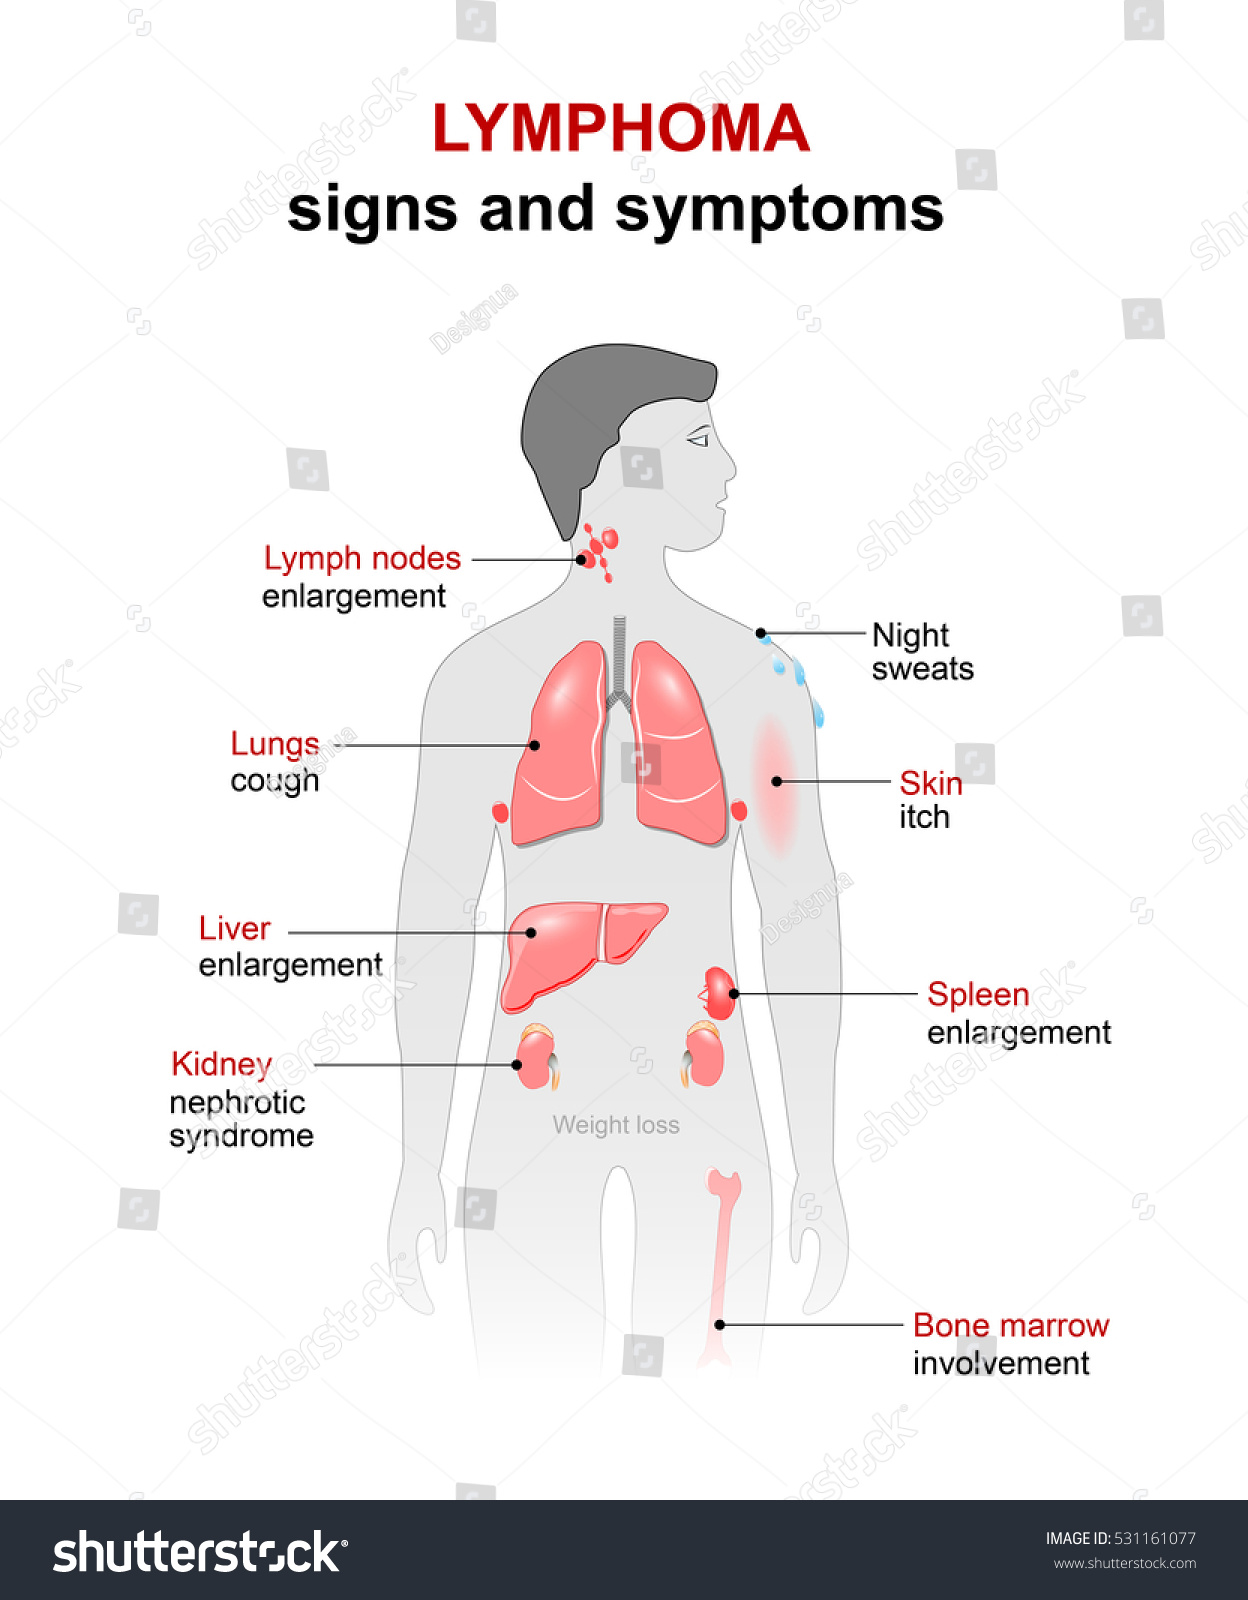 lymphoma cancer disease signs symptoms man stock illustration